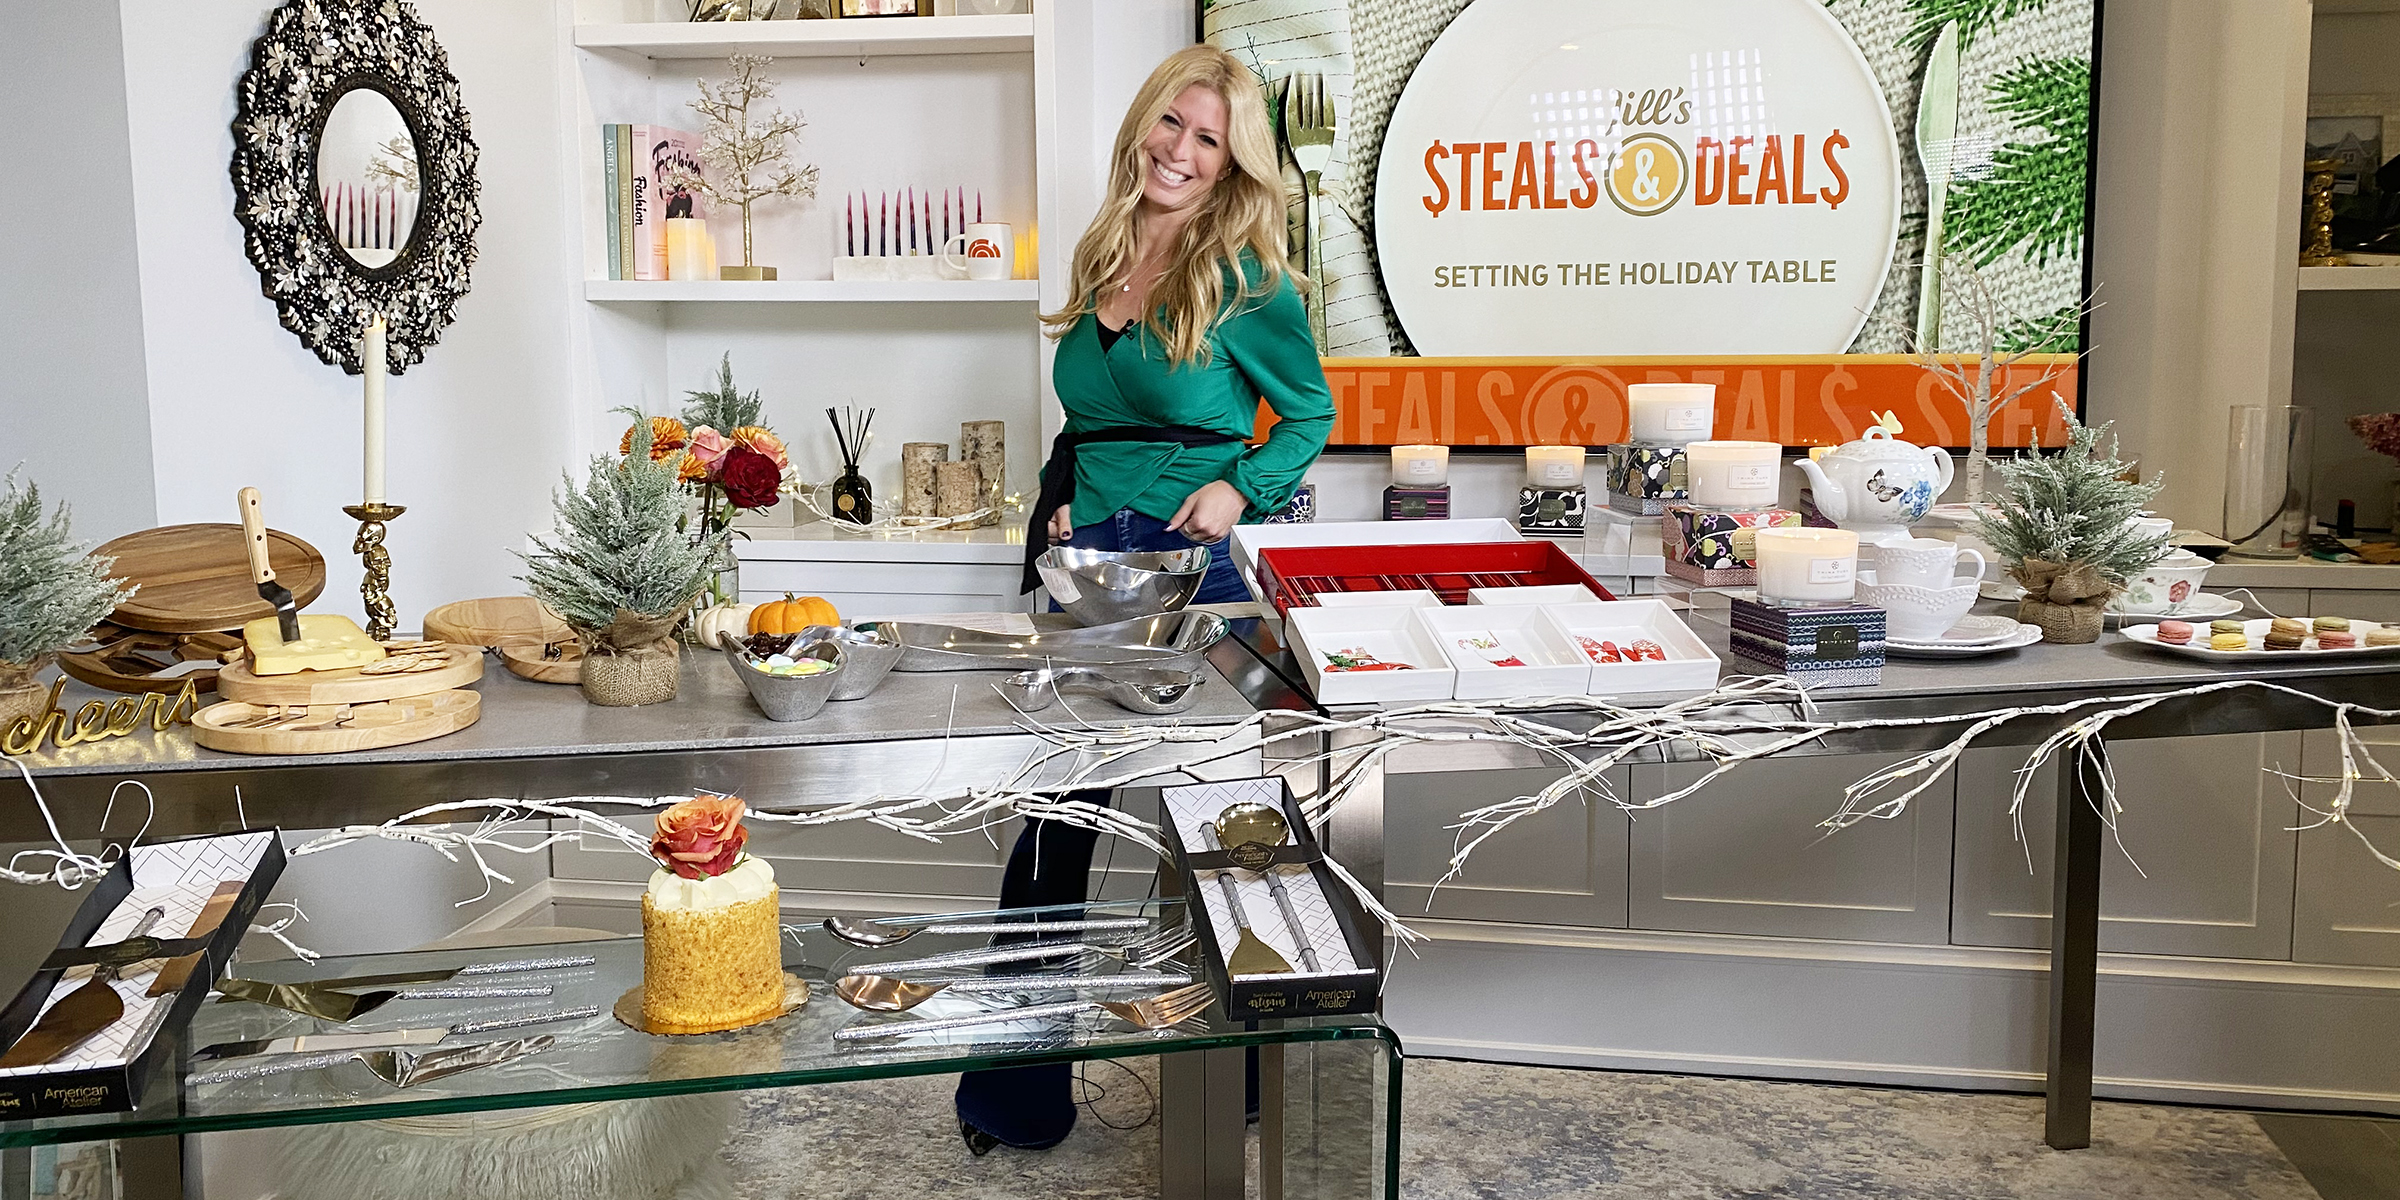 Jill S Steals And Deals Holiday Table Decor You Ll Love This Season